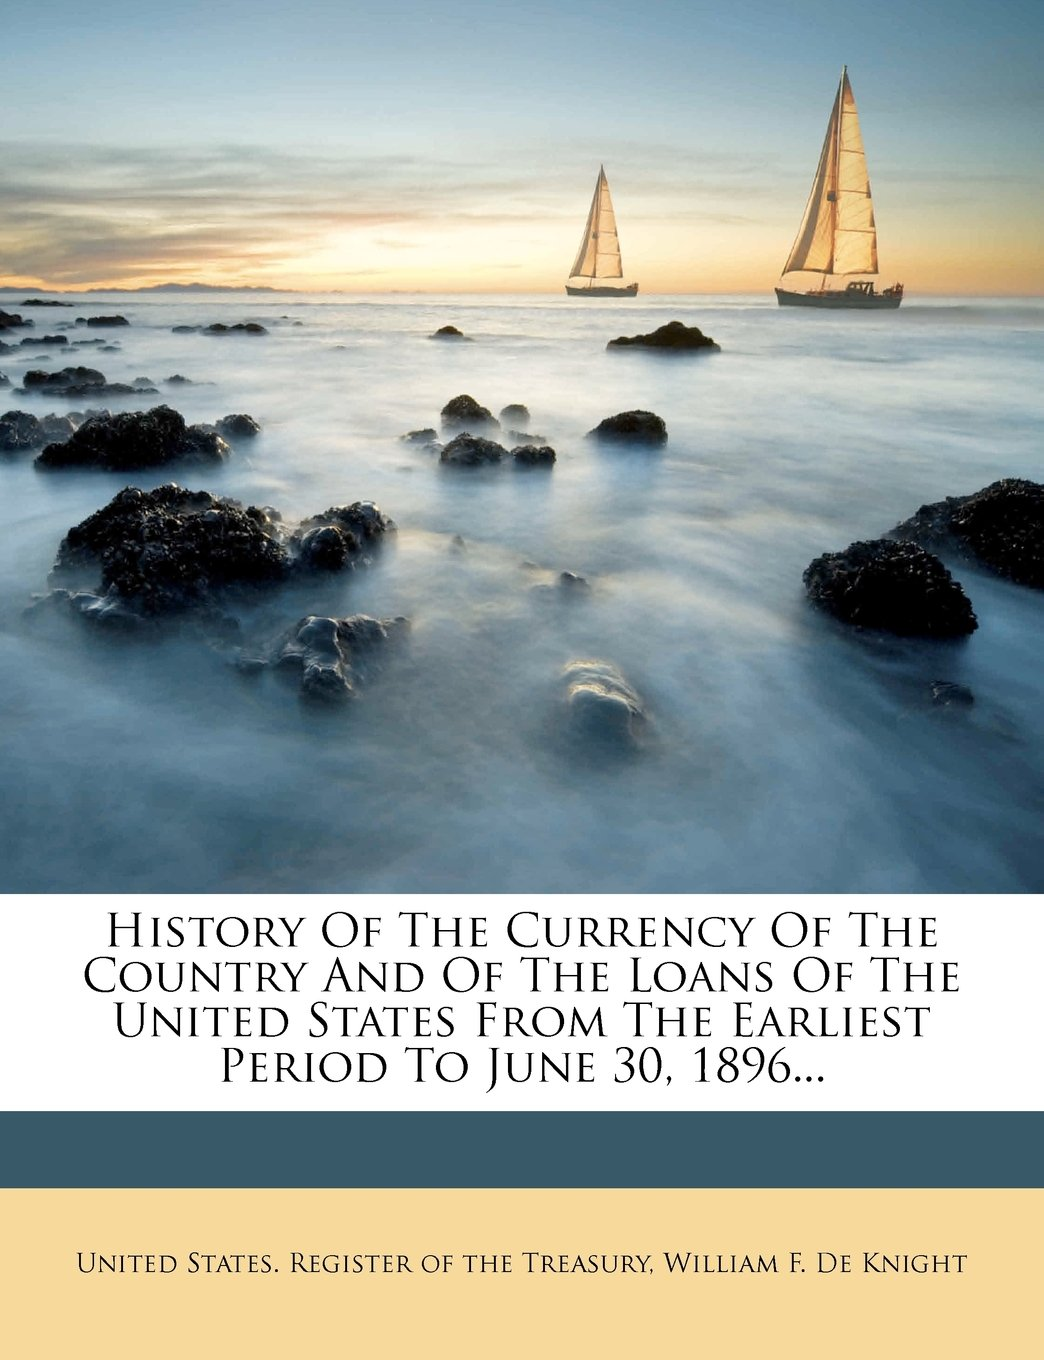 History of the Currency of the Country and of the Loans of the United States from the Earliest Period to June 30, 1896... pdf epub